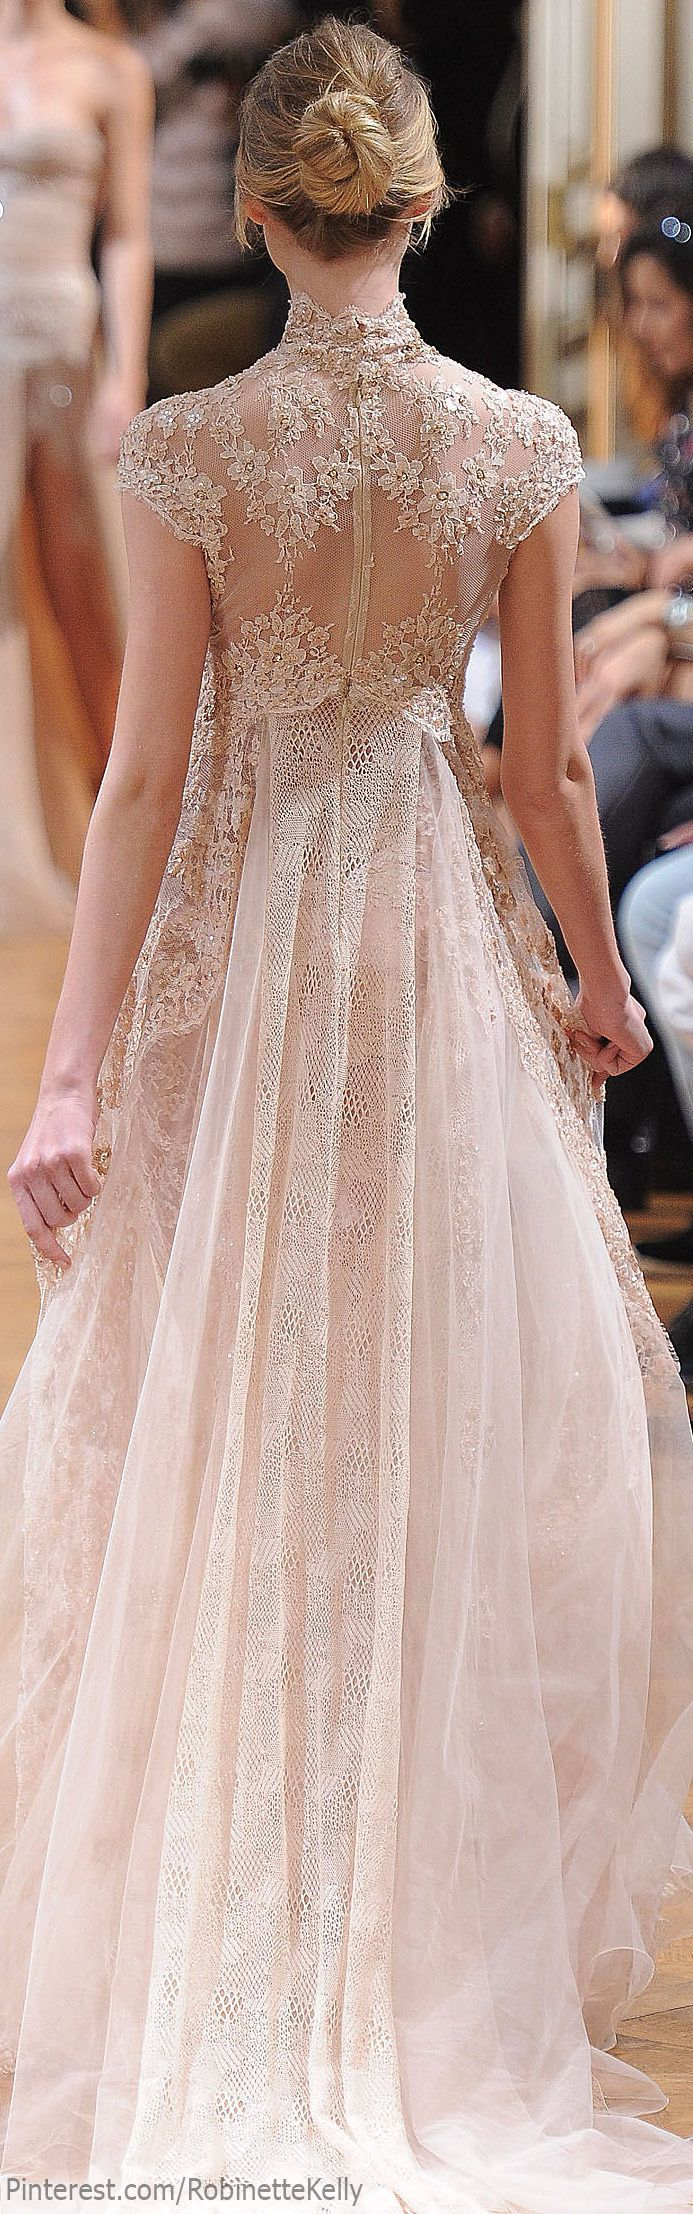 Lace Wedding Dress | Zuhair Murad Haute Couture | F/W 2013